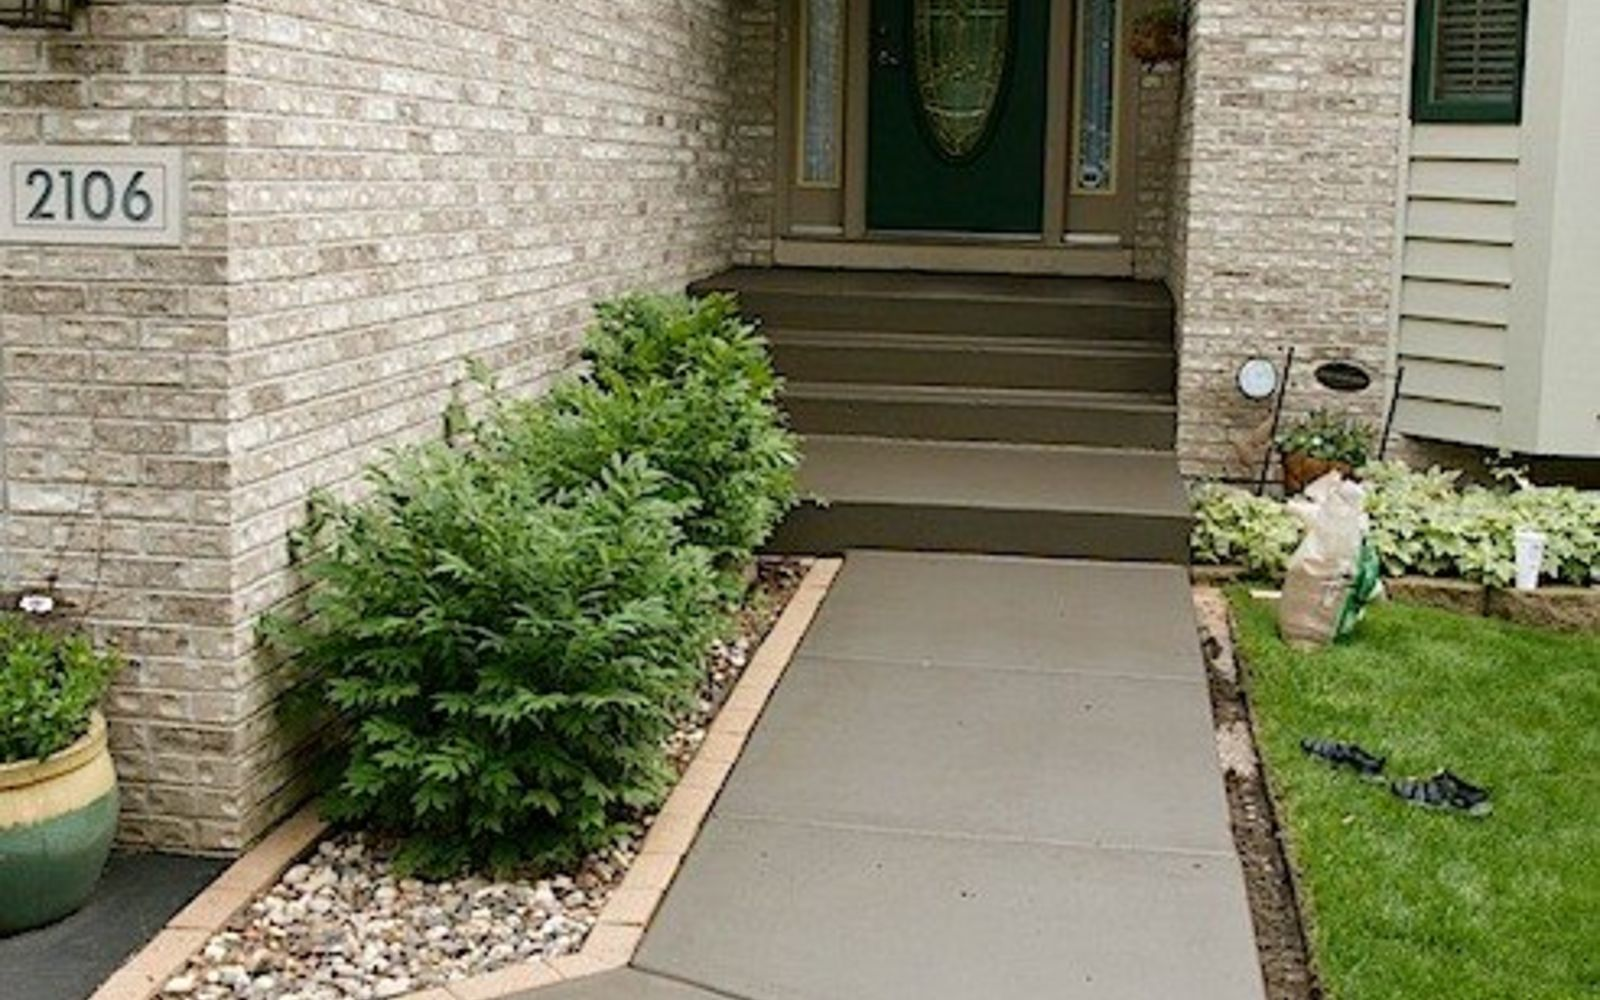 11 Quick And Easy Curb Appeal Ideas That Make A Huge